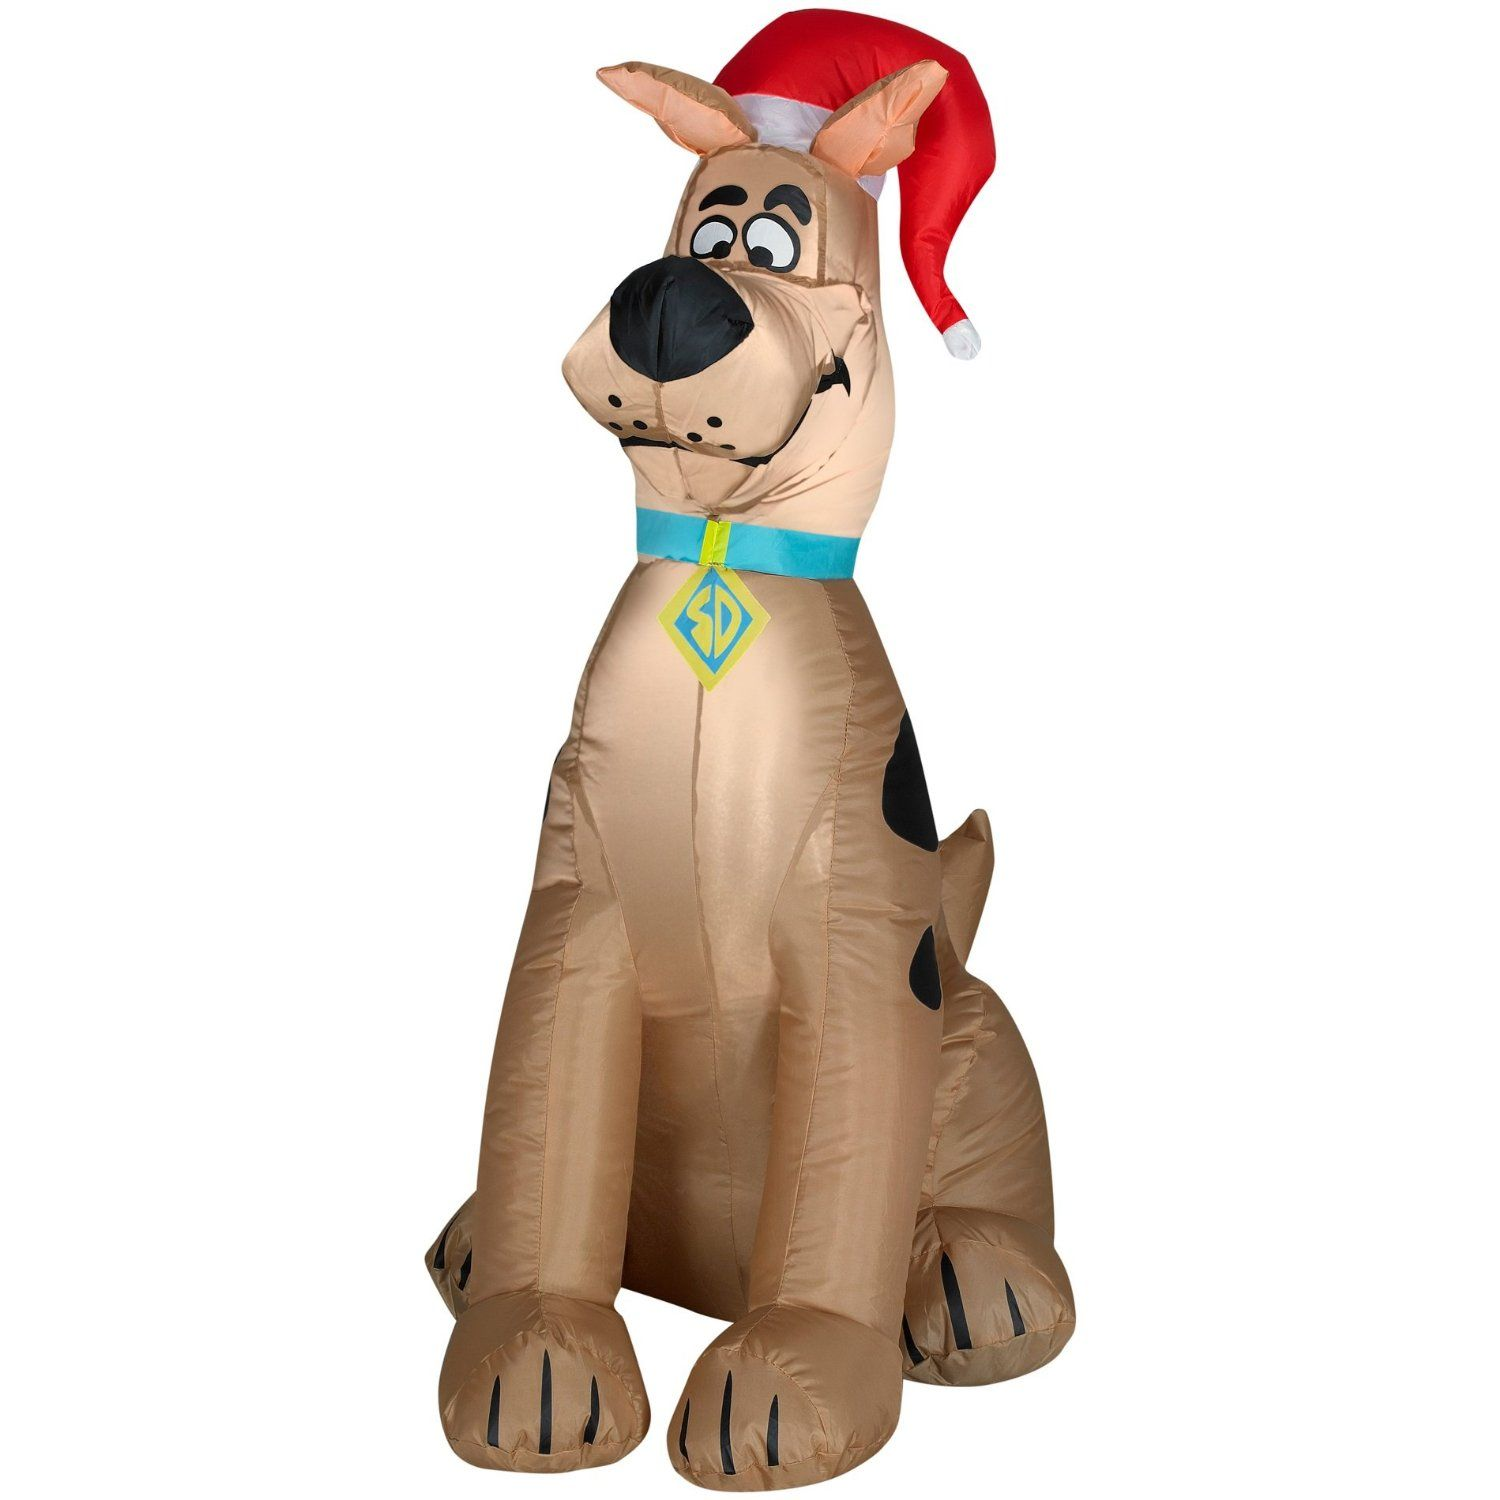 Gemmy inflatable airblown reindeer outdoor christmas decoration lowe - Airblown Scooby Doo Available At These Retailers Kmart Christmas Lawn Decorations